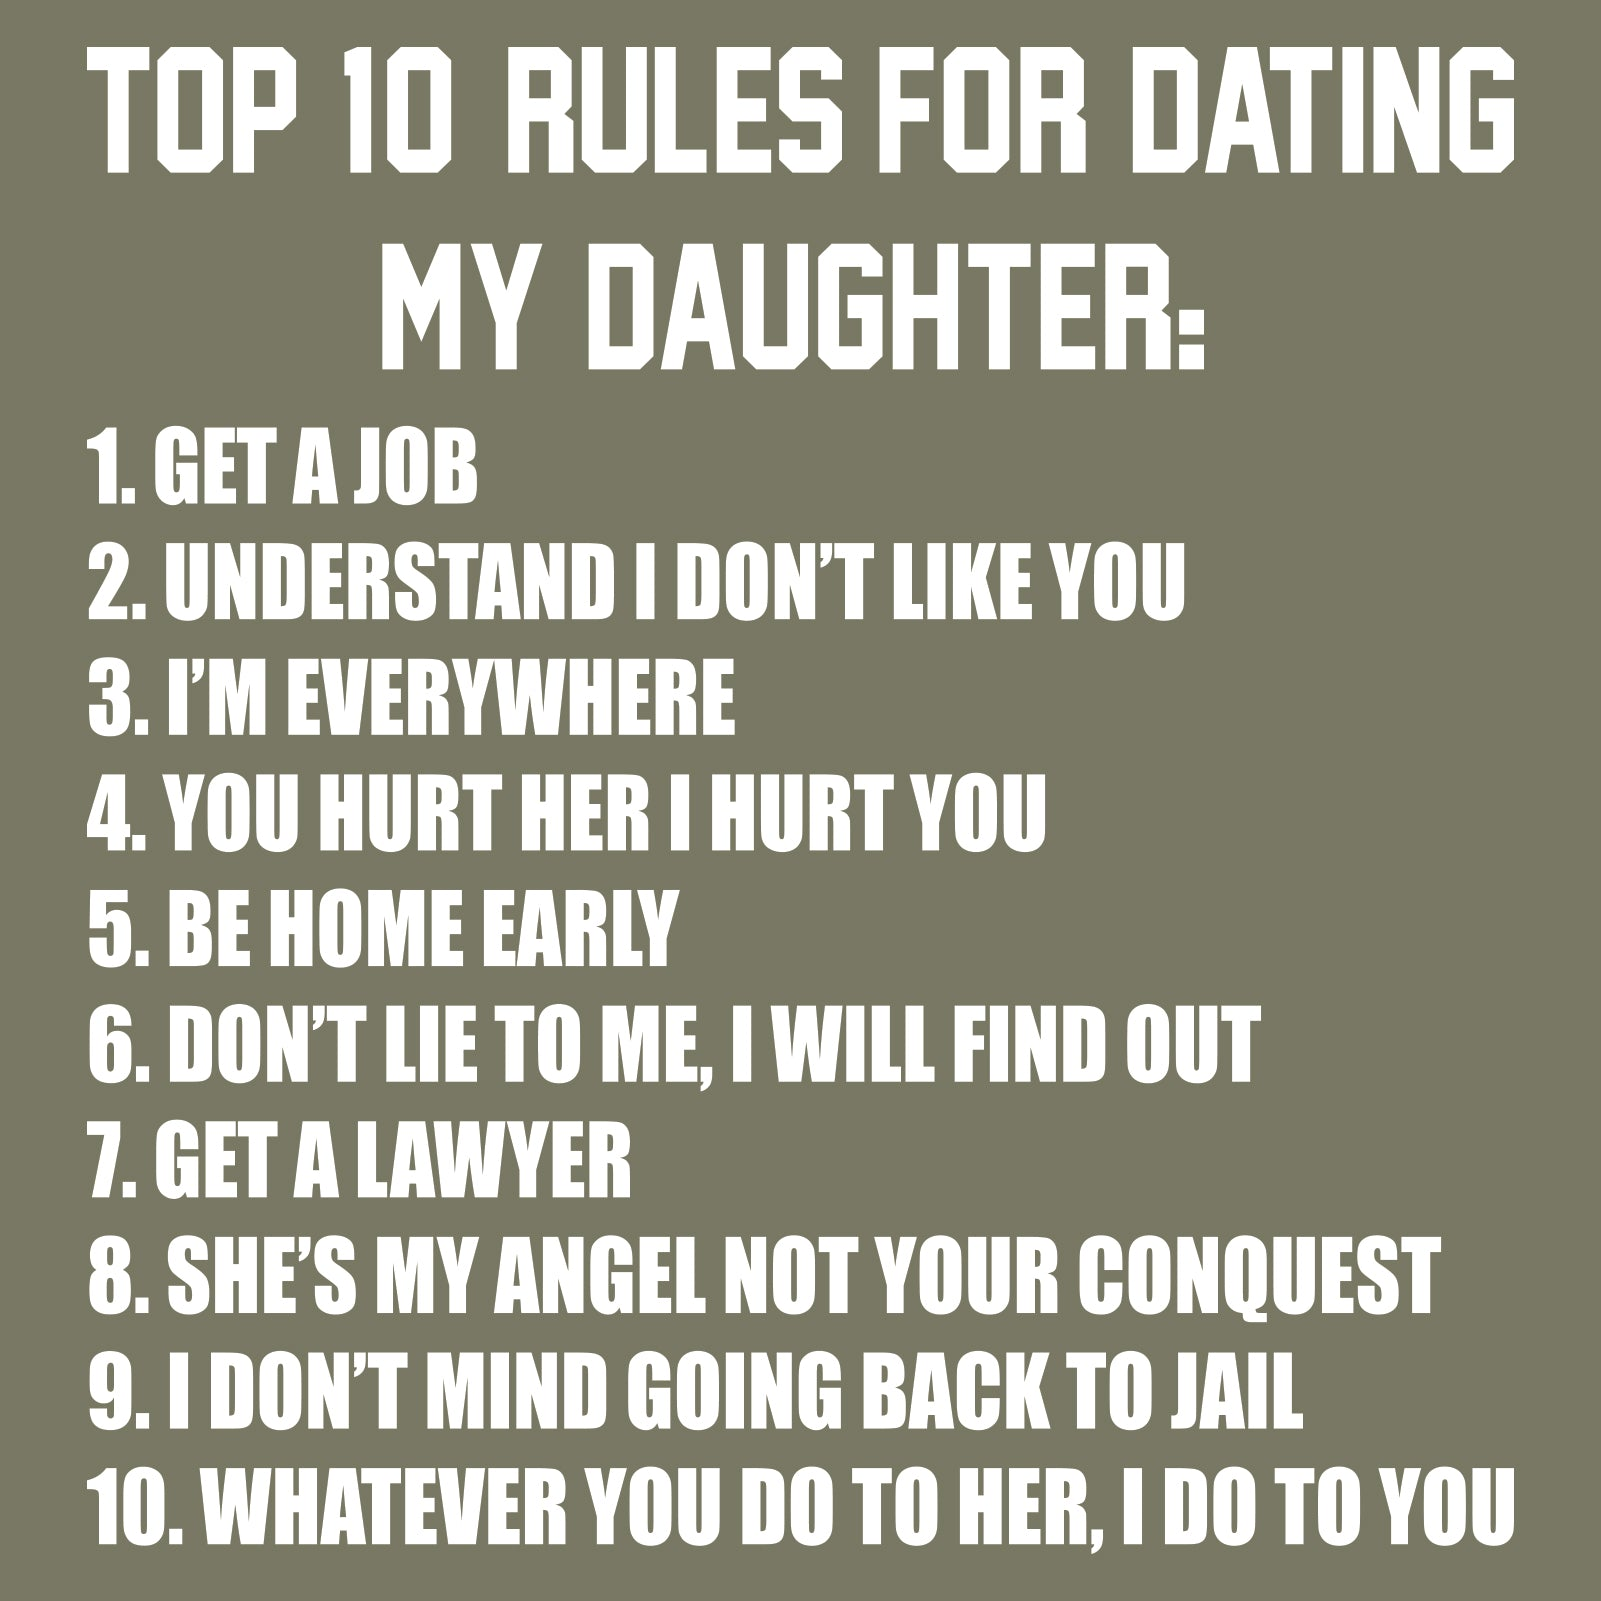 requirements for dating my daughter